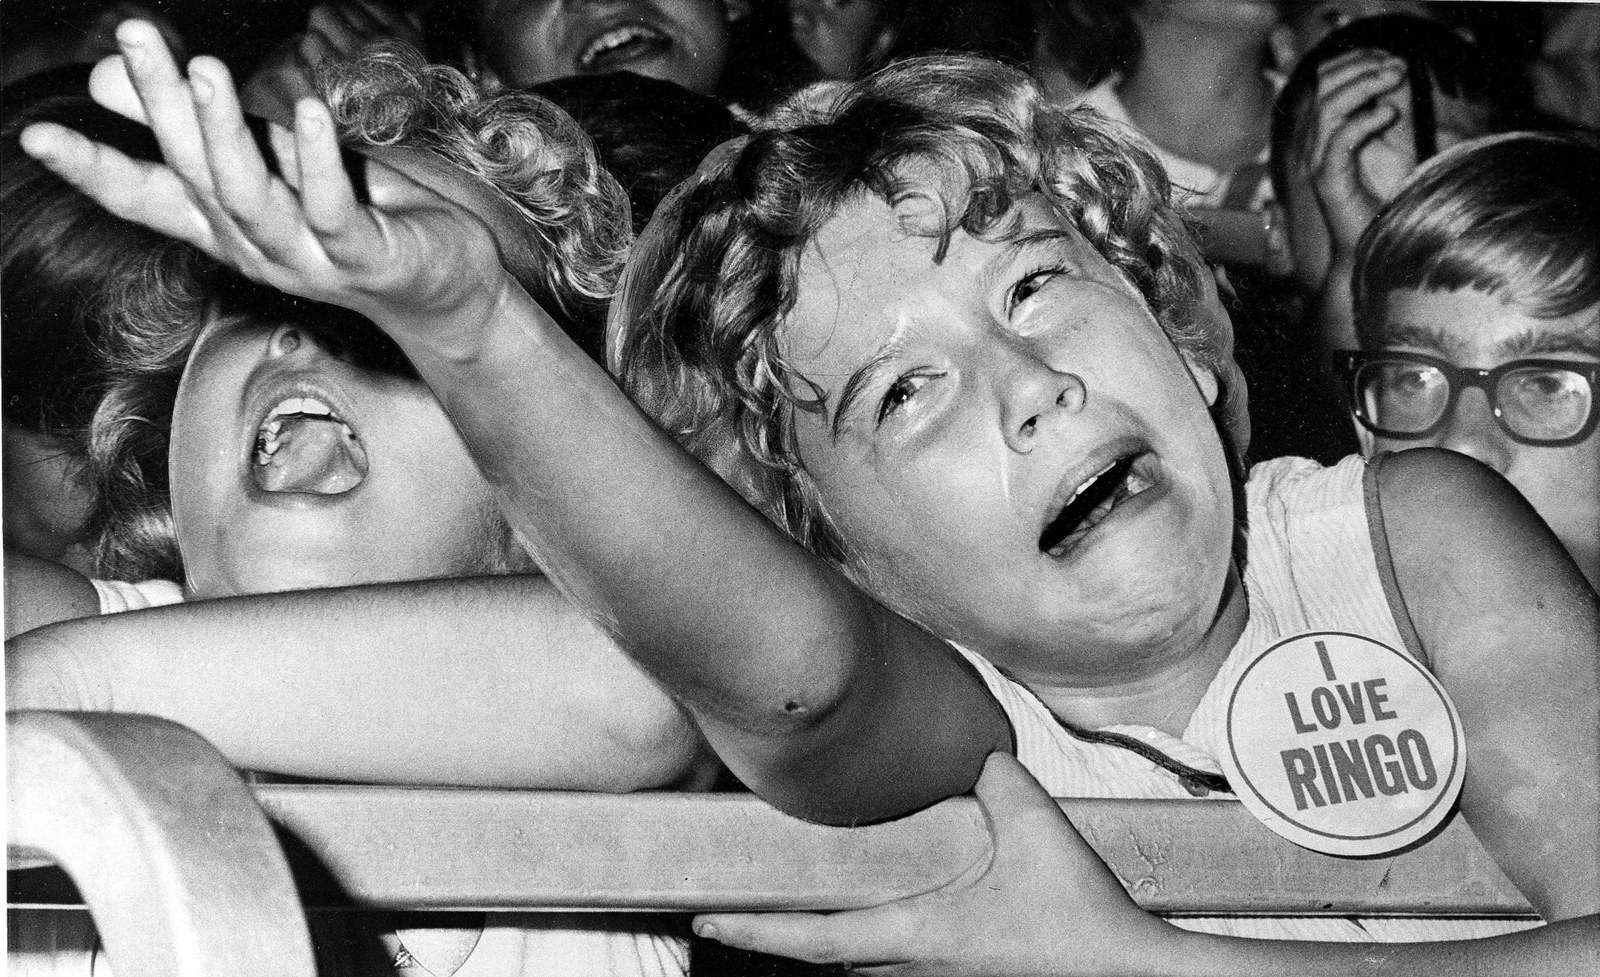 23 Photos That Prove Beatles Fans Were Doing The Absolute Most In The '60s